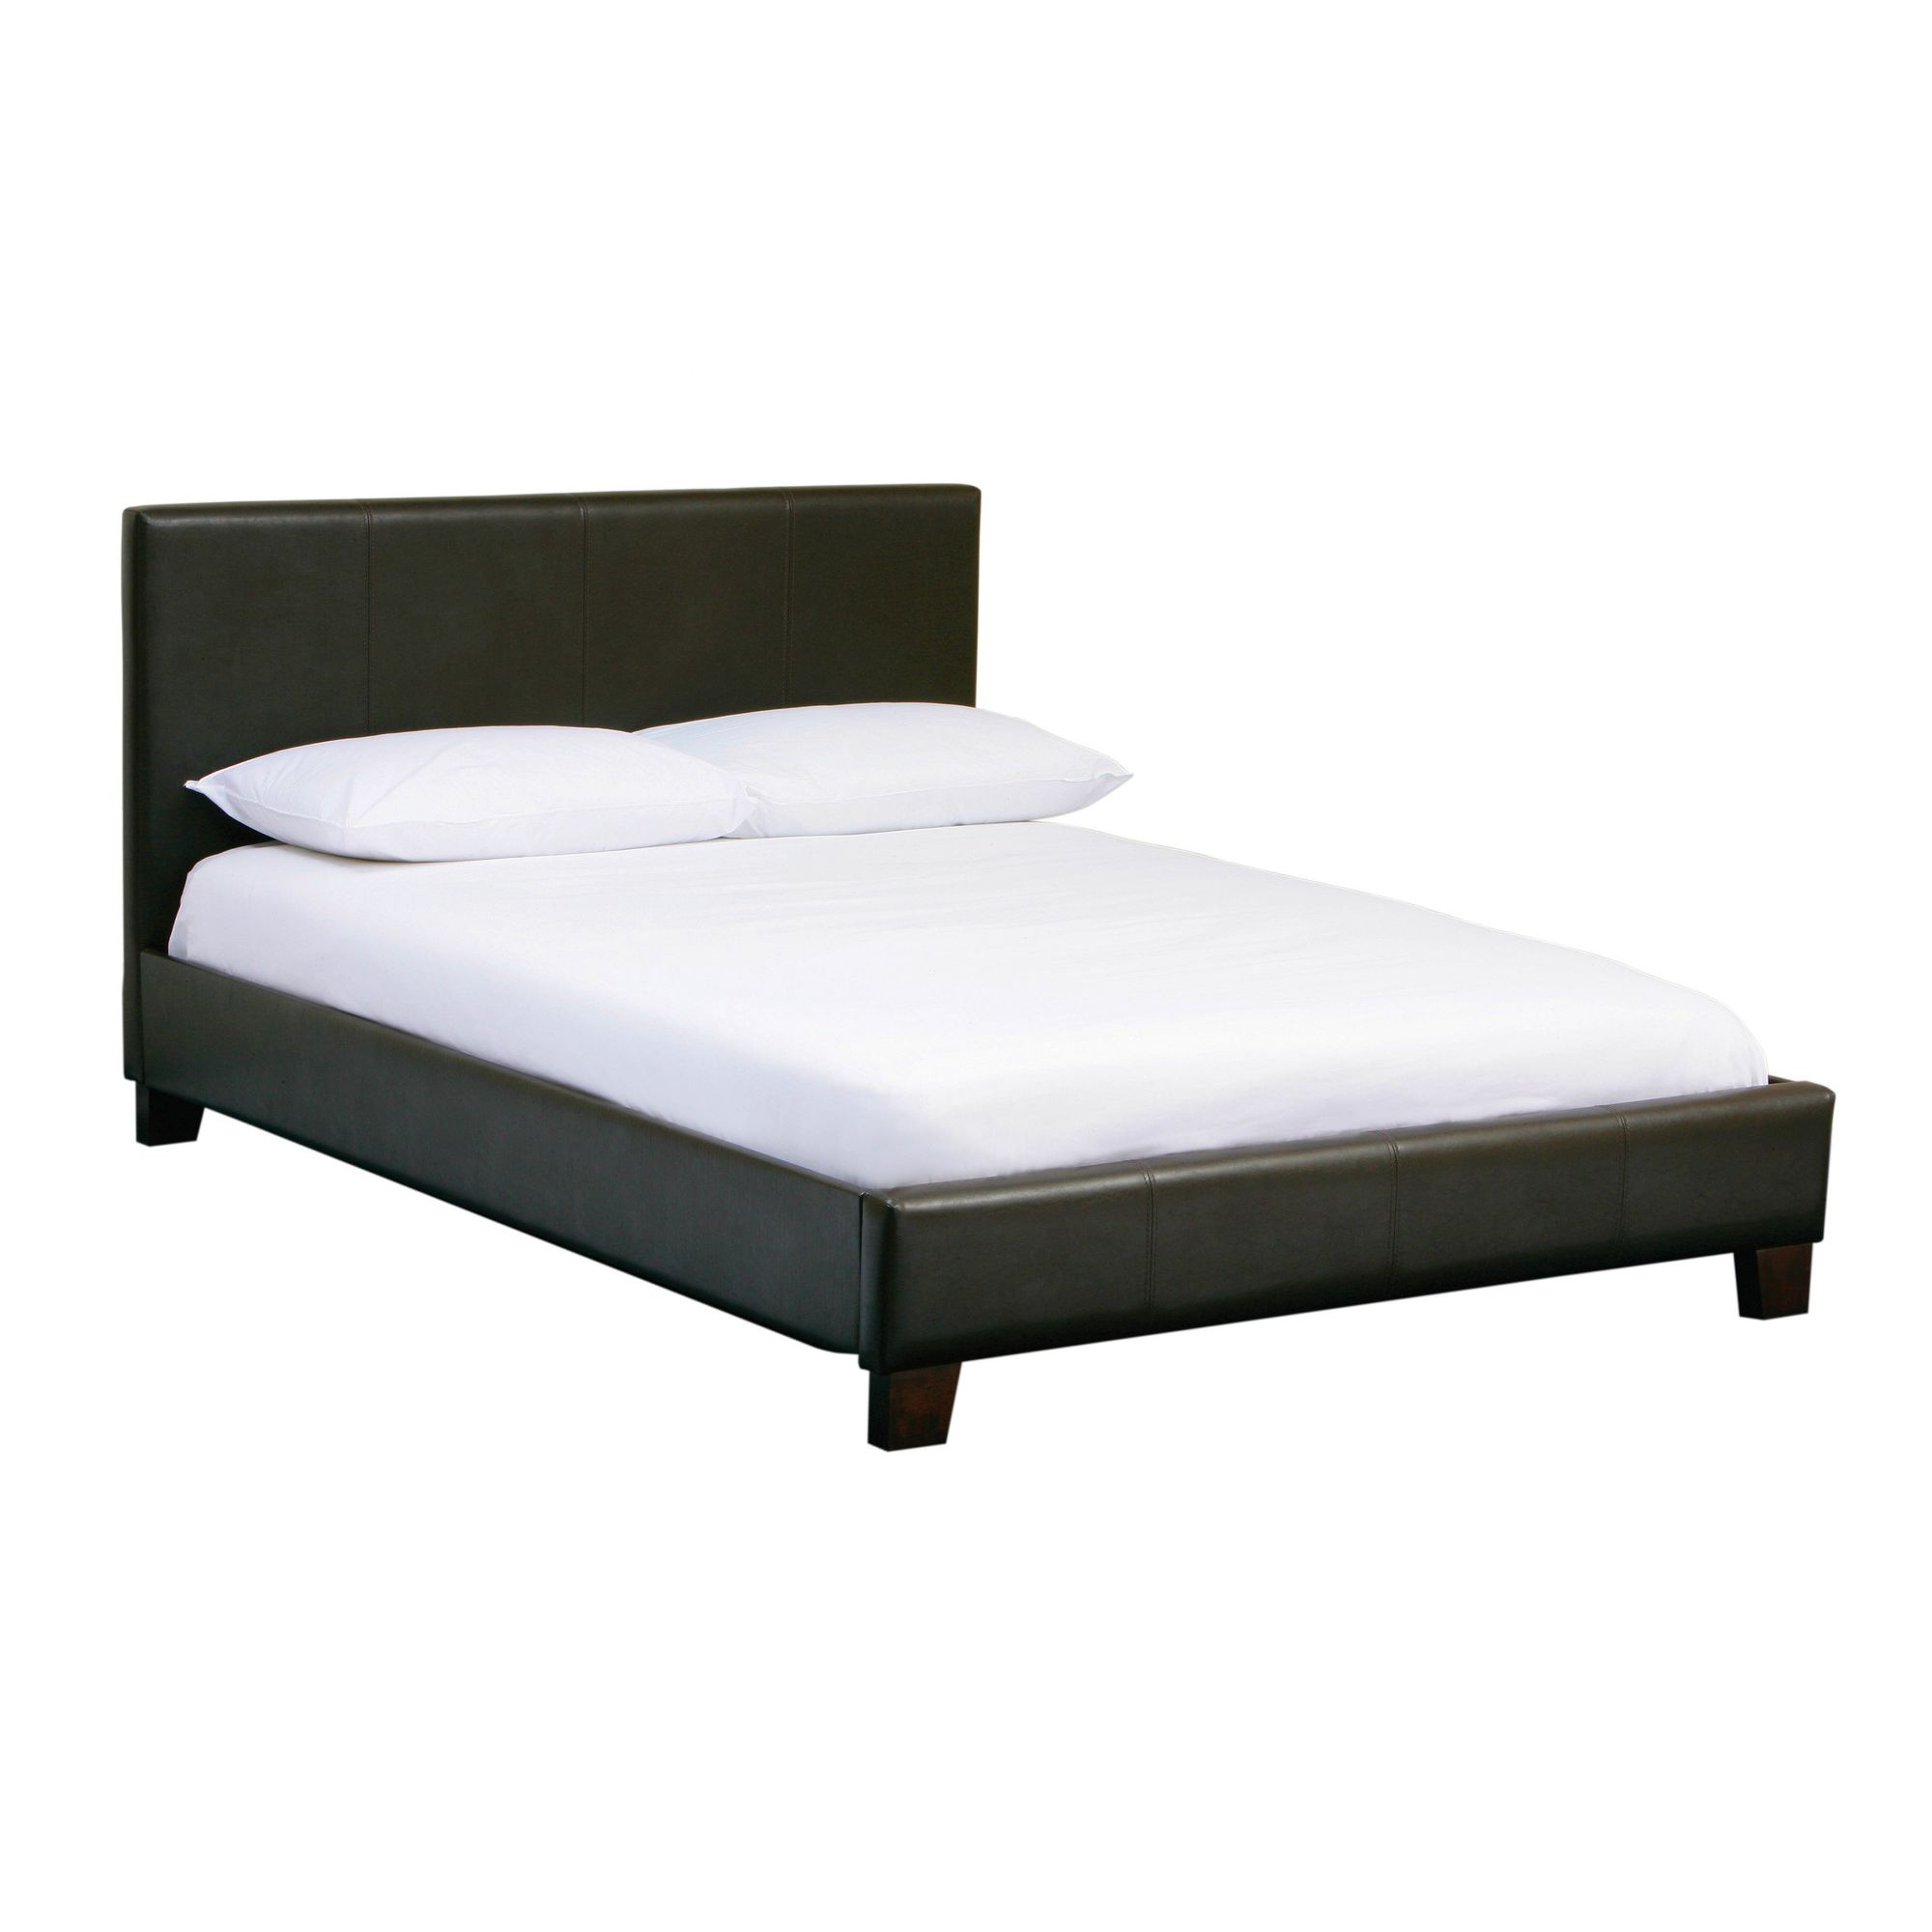 Premier Housewares Natalia Frame Bed - King - Chocholate at Tesco Direct